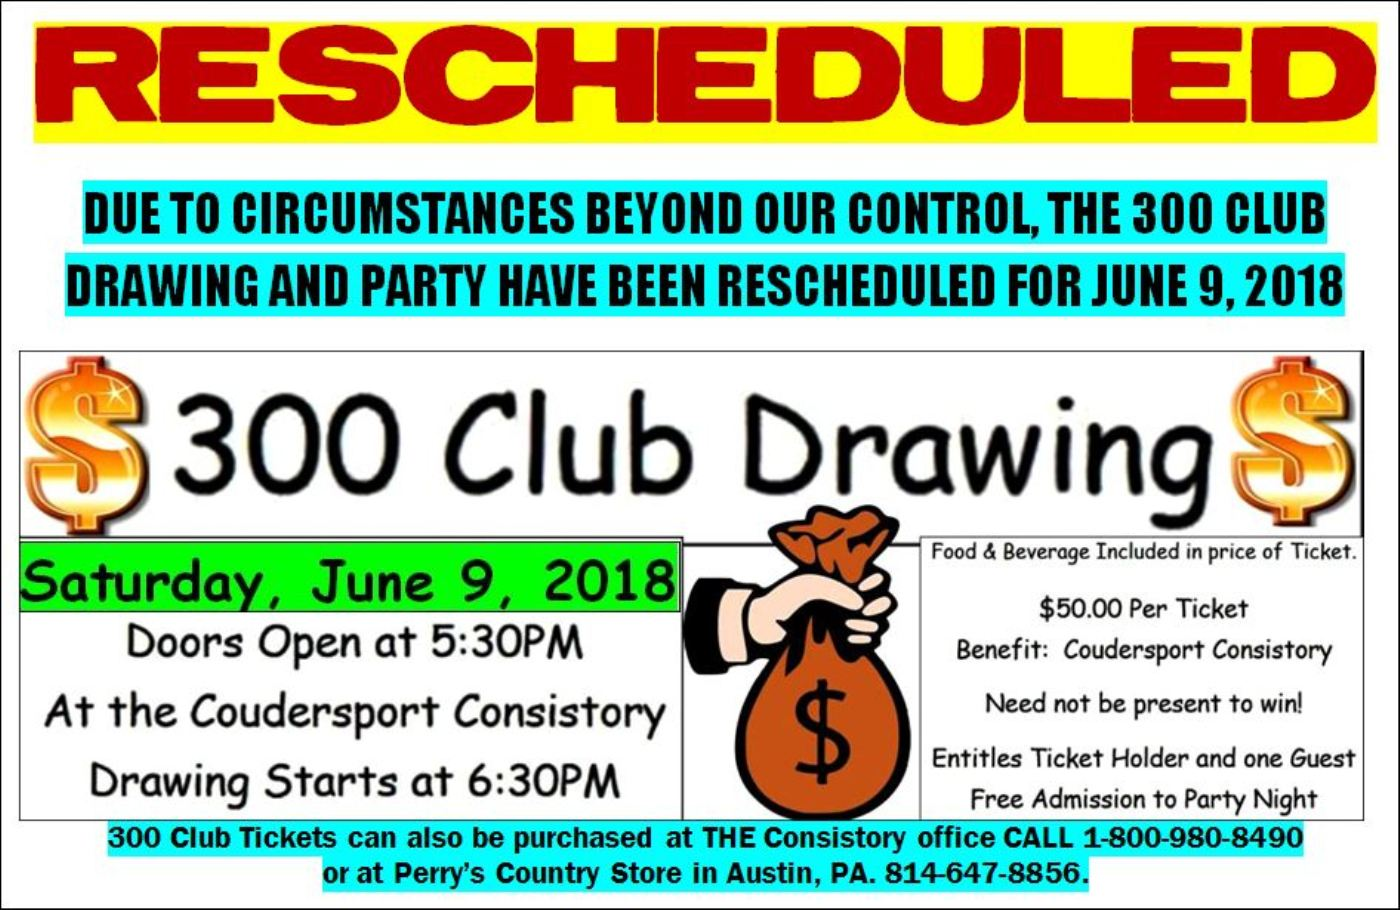 Coudersport Consistory 300 Club Rescheduled